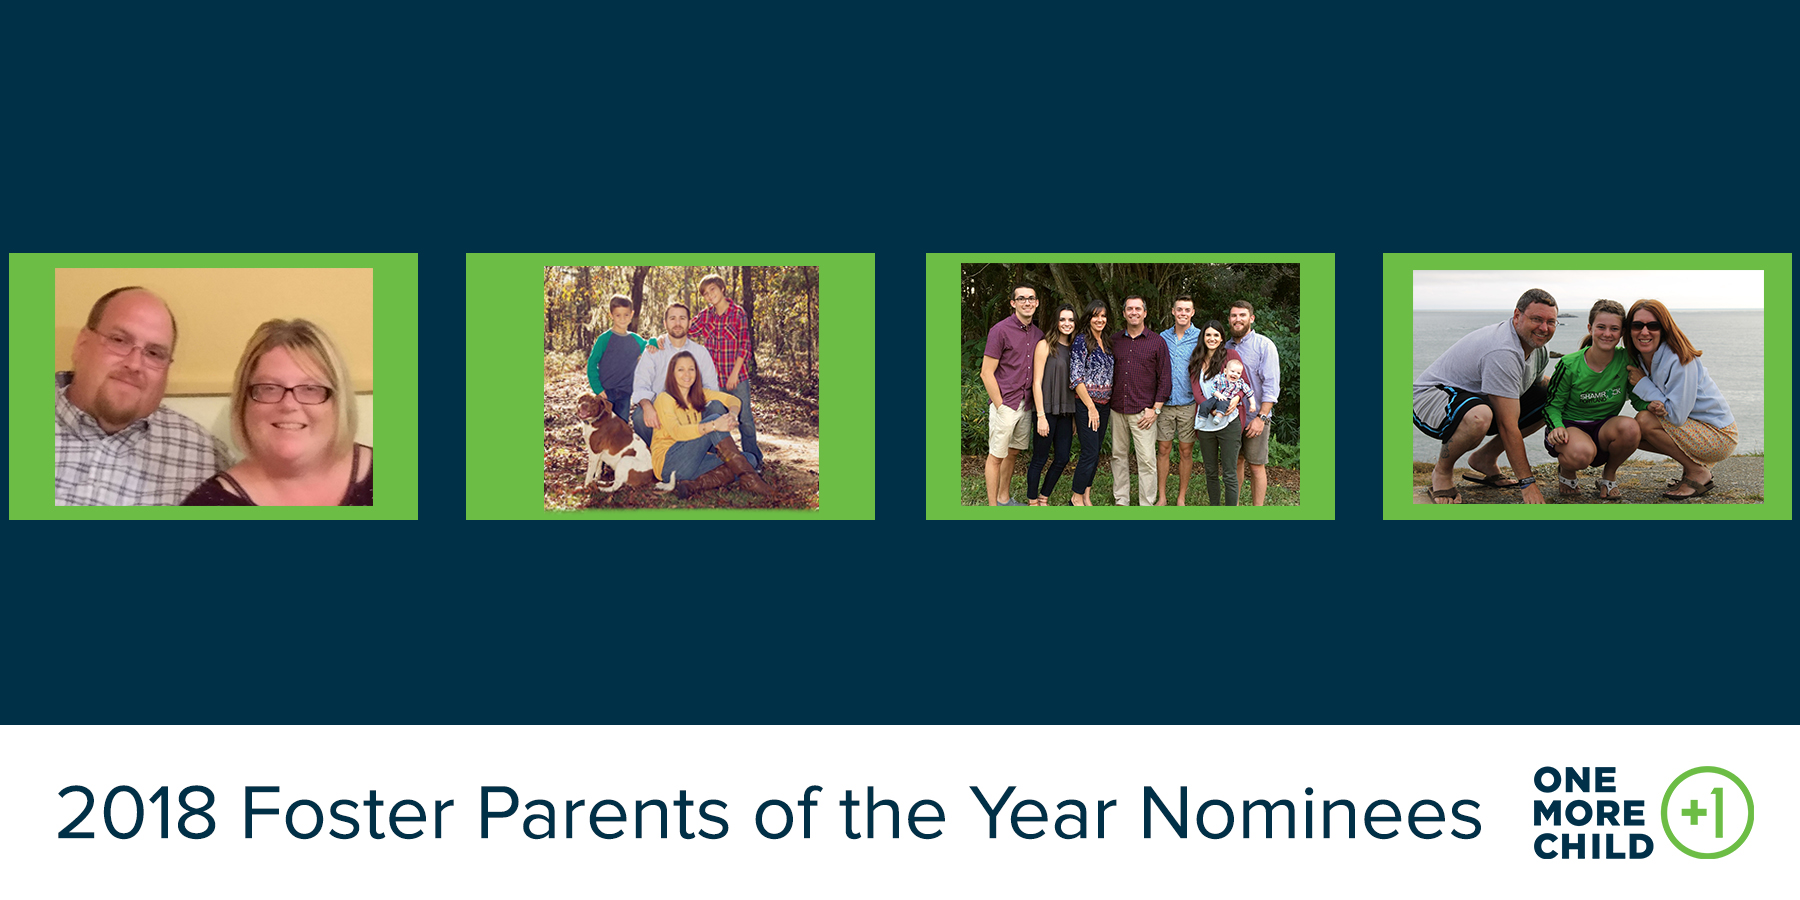 2018 Foster Parents of the Year Nominees (Pt. 1)